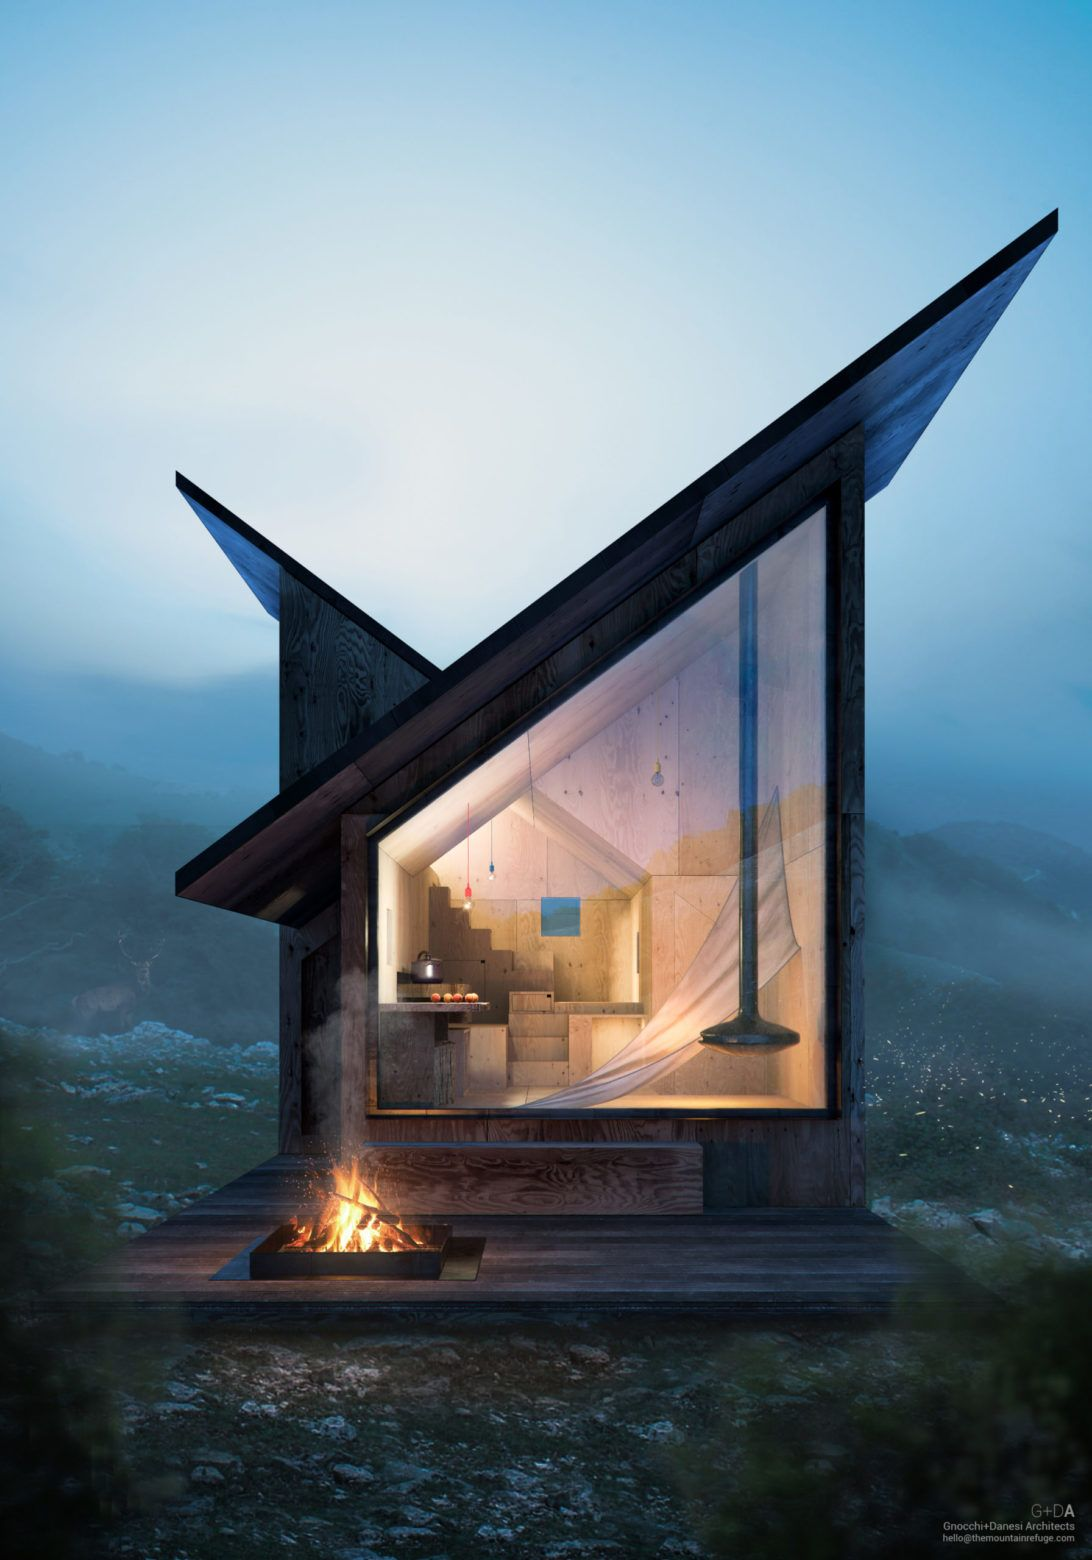 Living Off Grid Wild At Heart In The Mountain Refuge In 2020 Minimalist House Design Duplex House Design Contemporary House Design